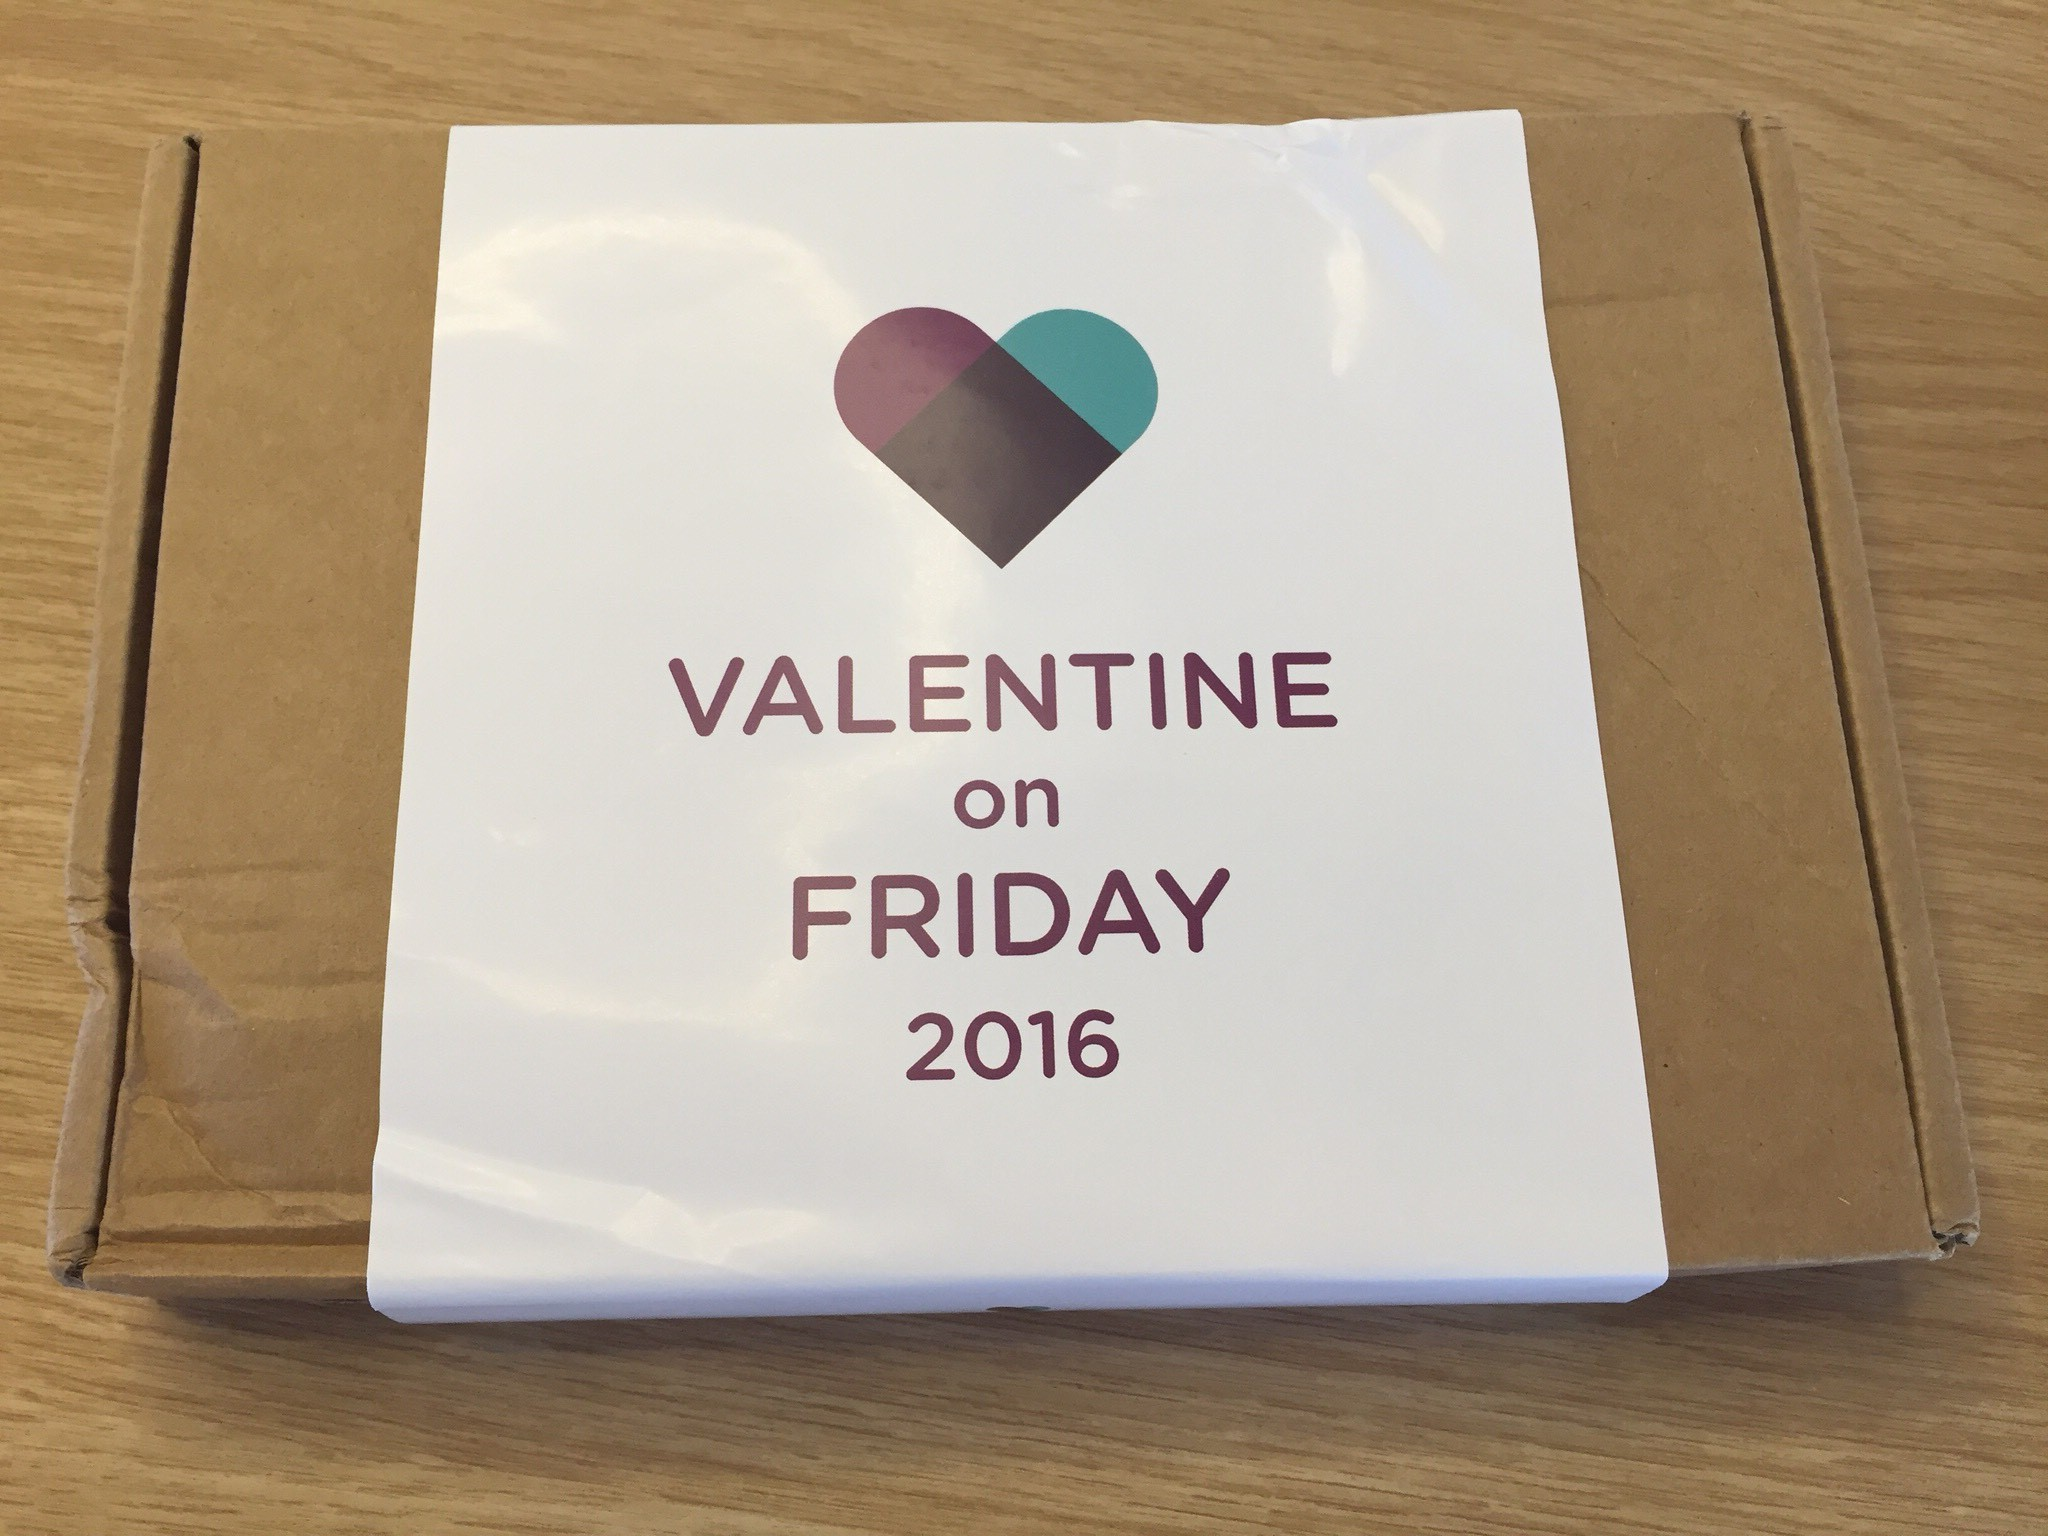 Valentine on Friday 2016